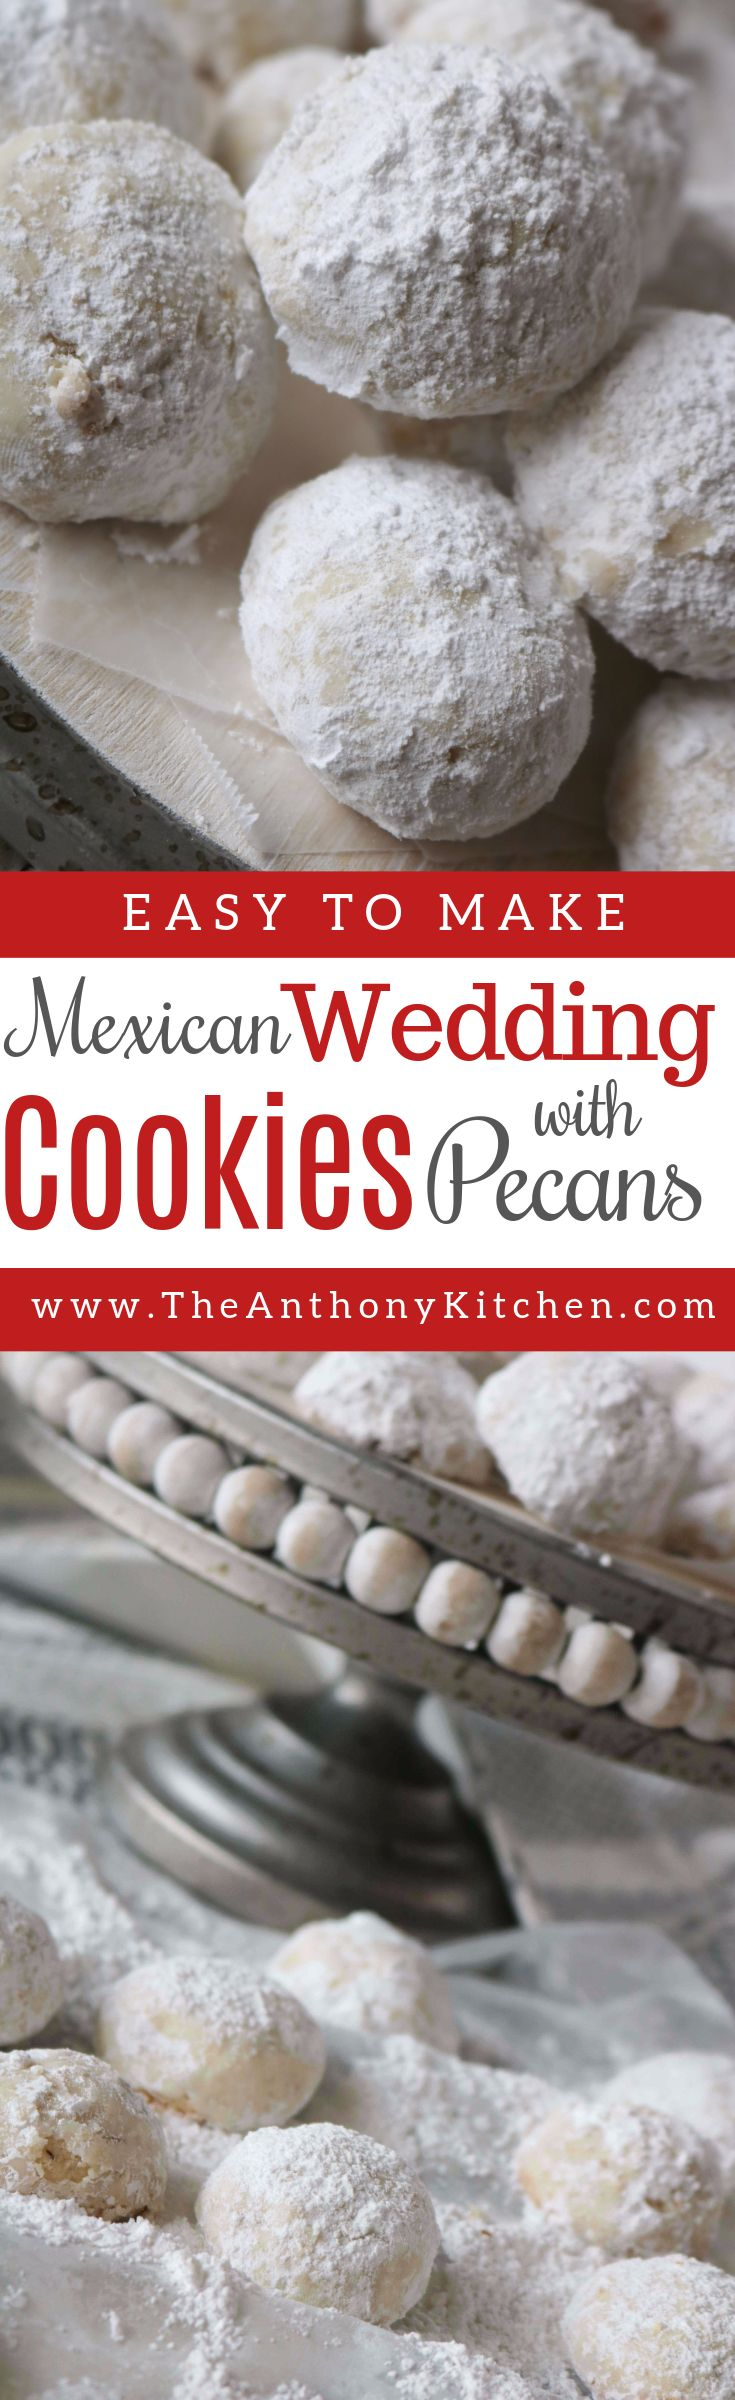 Best Mexican Wedding Cookie Recipe | A recipe for Mexican Wedding Cookies (also know as snowball cookies), a buttery, melt-in-your-mouth cookie rolled in powdered sugar | #easycookierecipes #cookierecipesfromscratch #buttercookies